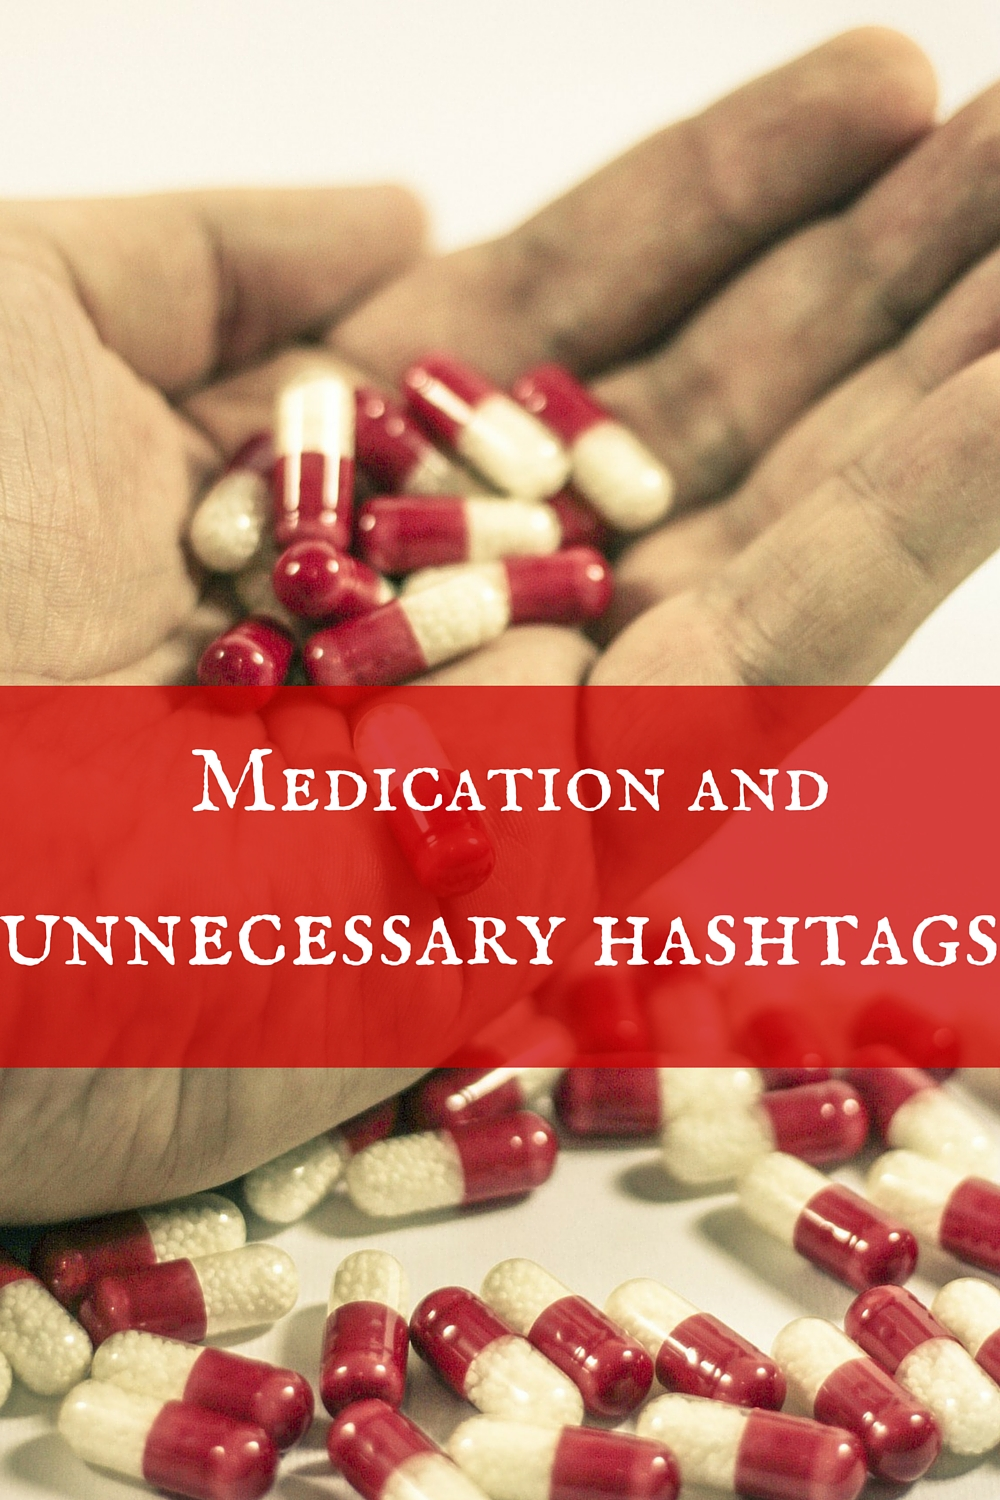 Some updates punctuated by needless hashtags because... #SocialMediaAddiction